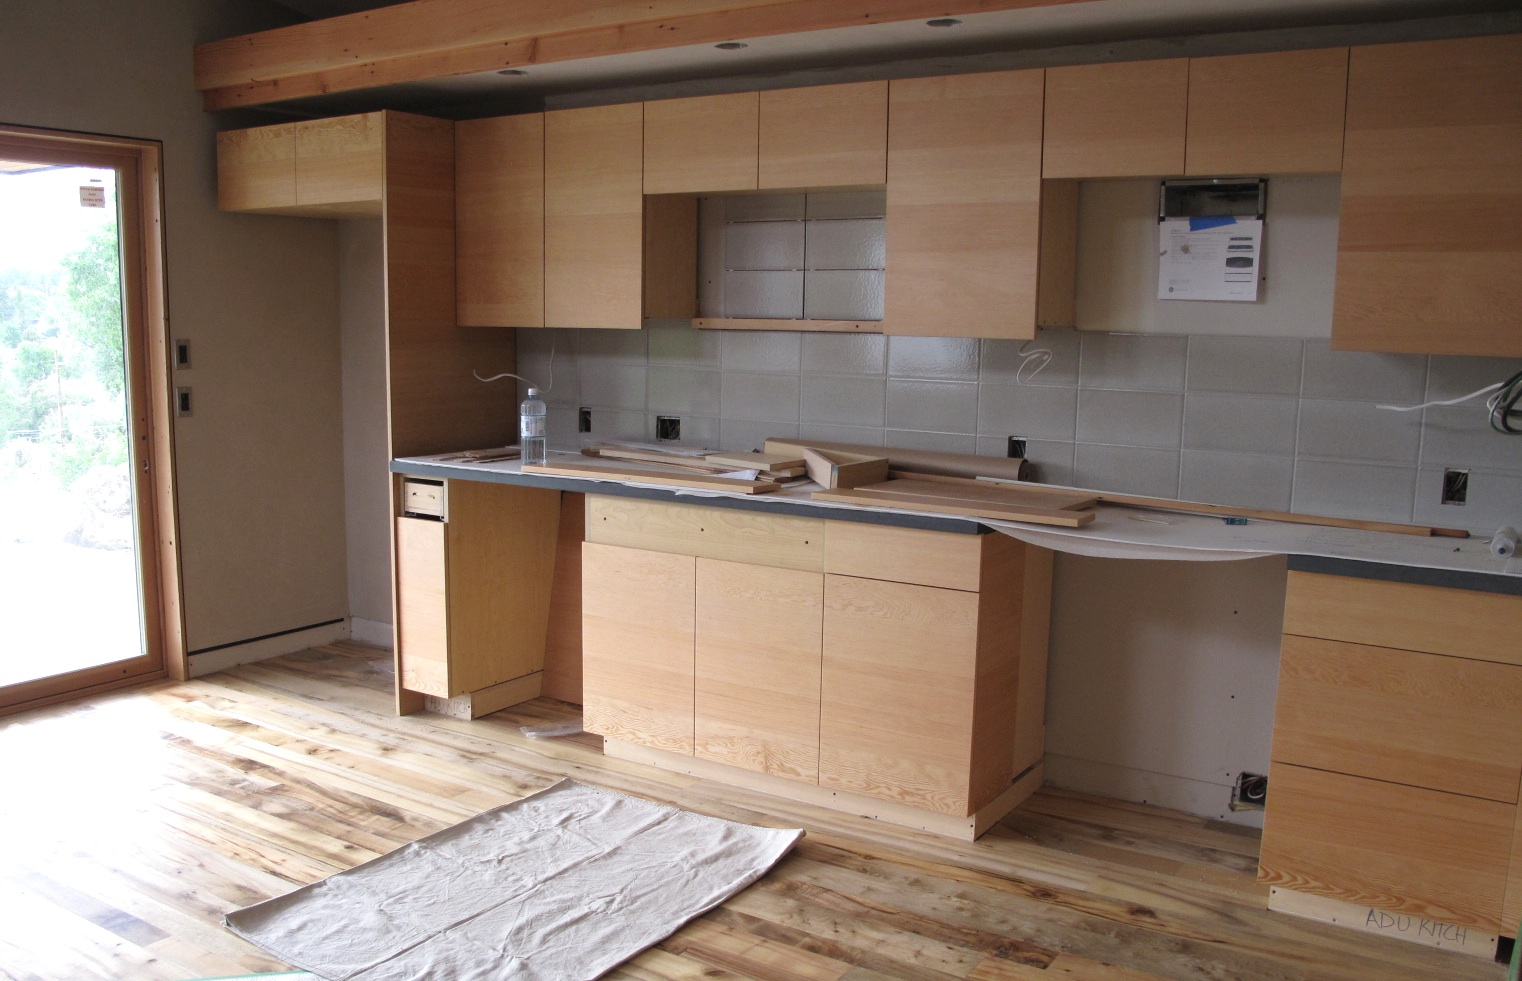 The Kitchen Area In The ADU With FSC Wood Cabinets Salvaged